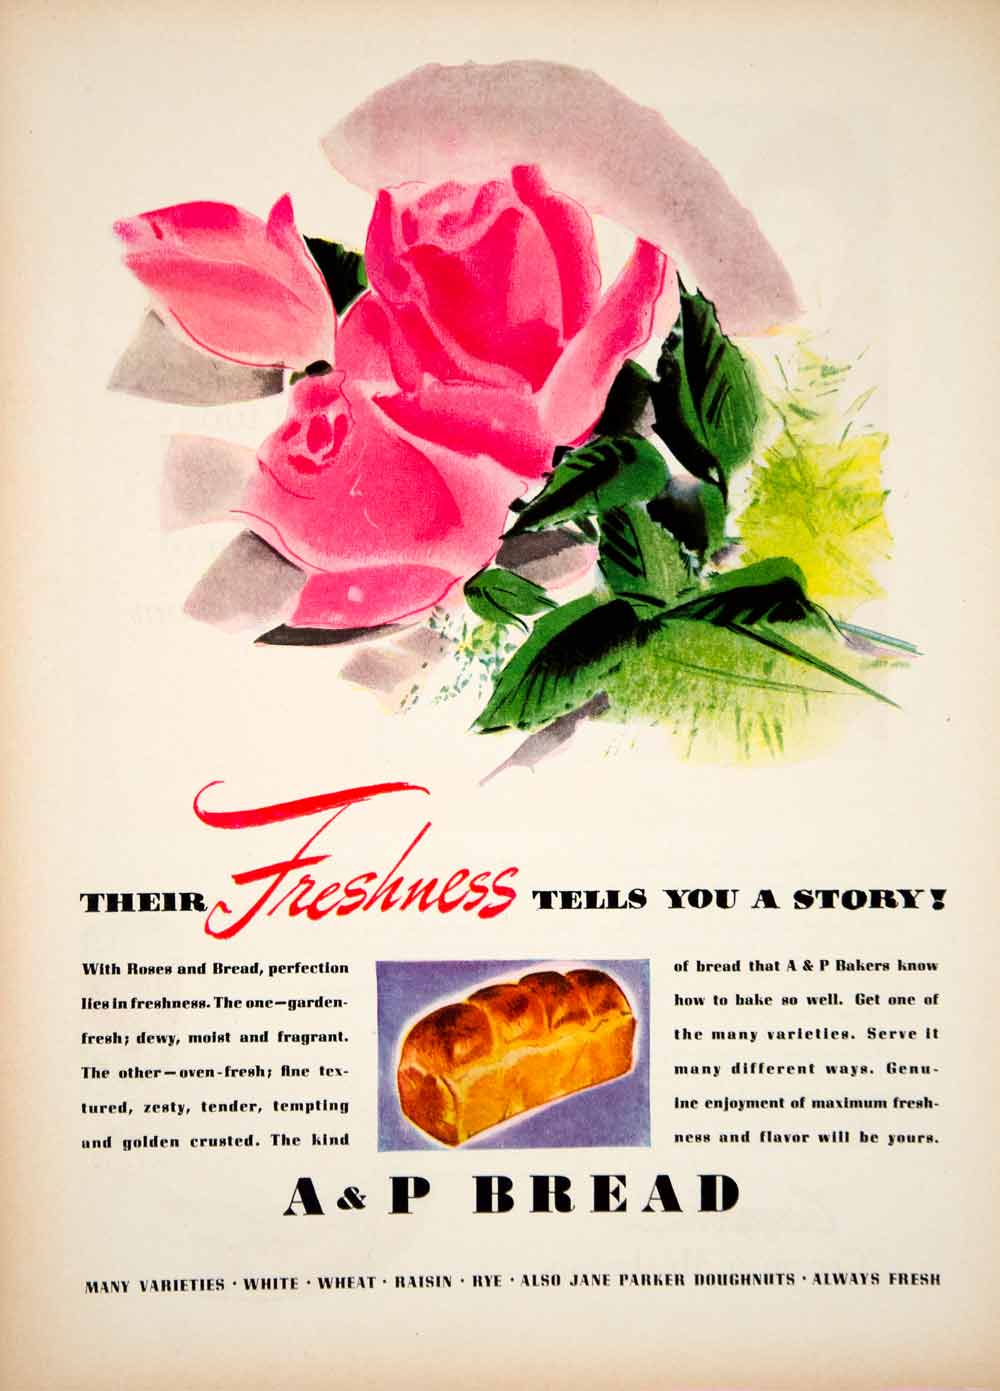 1939 Ad Vintage A & P Bread Bakery Crust Loaf Sliced Food Pink Rose Flower YWD3